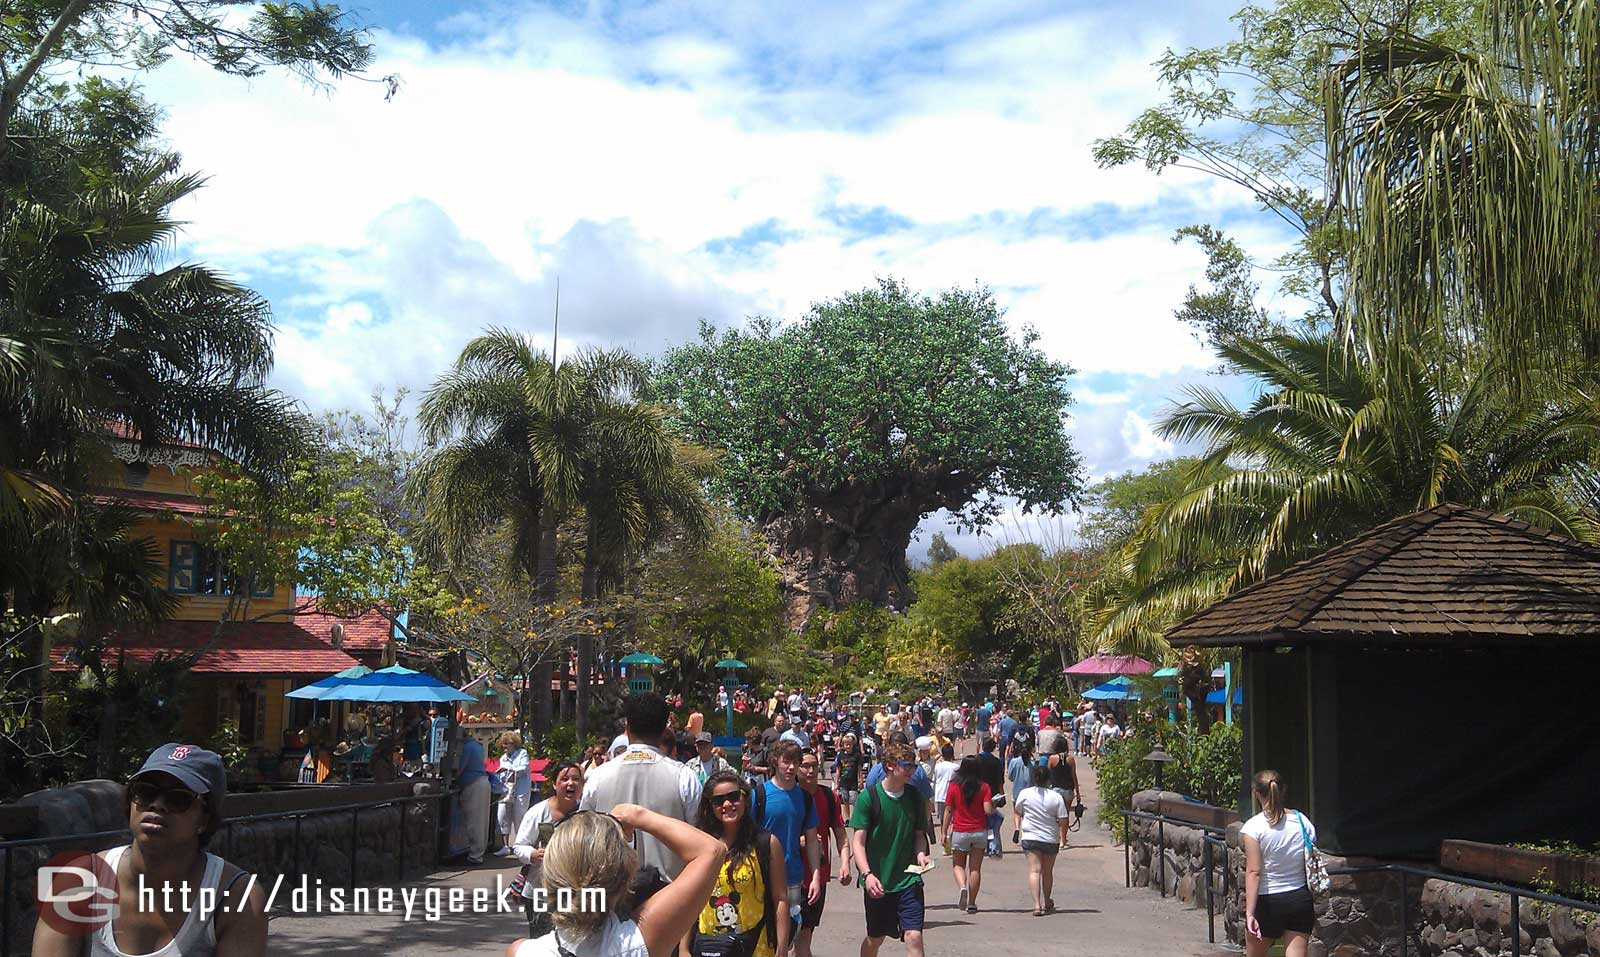 Heading out, one more look back into the park #DAK15